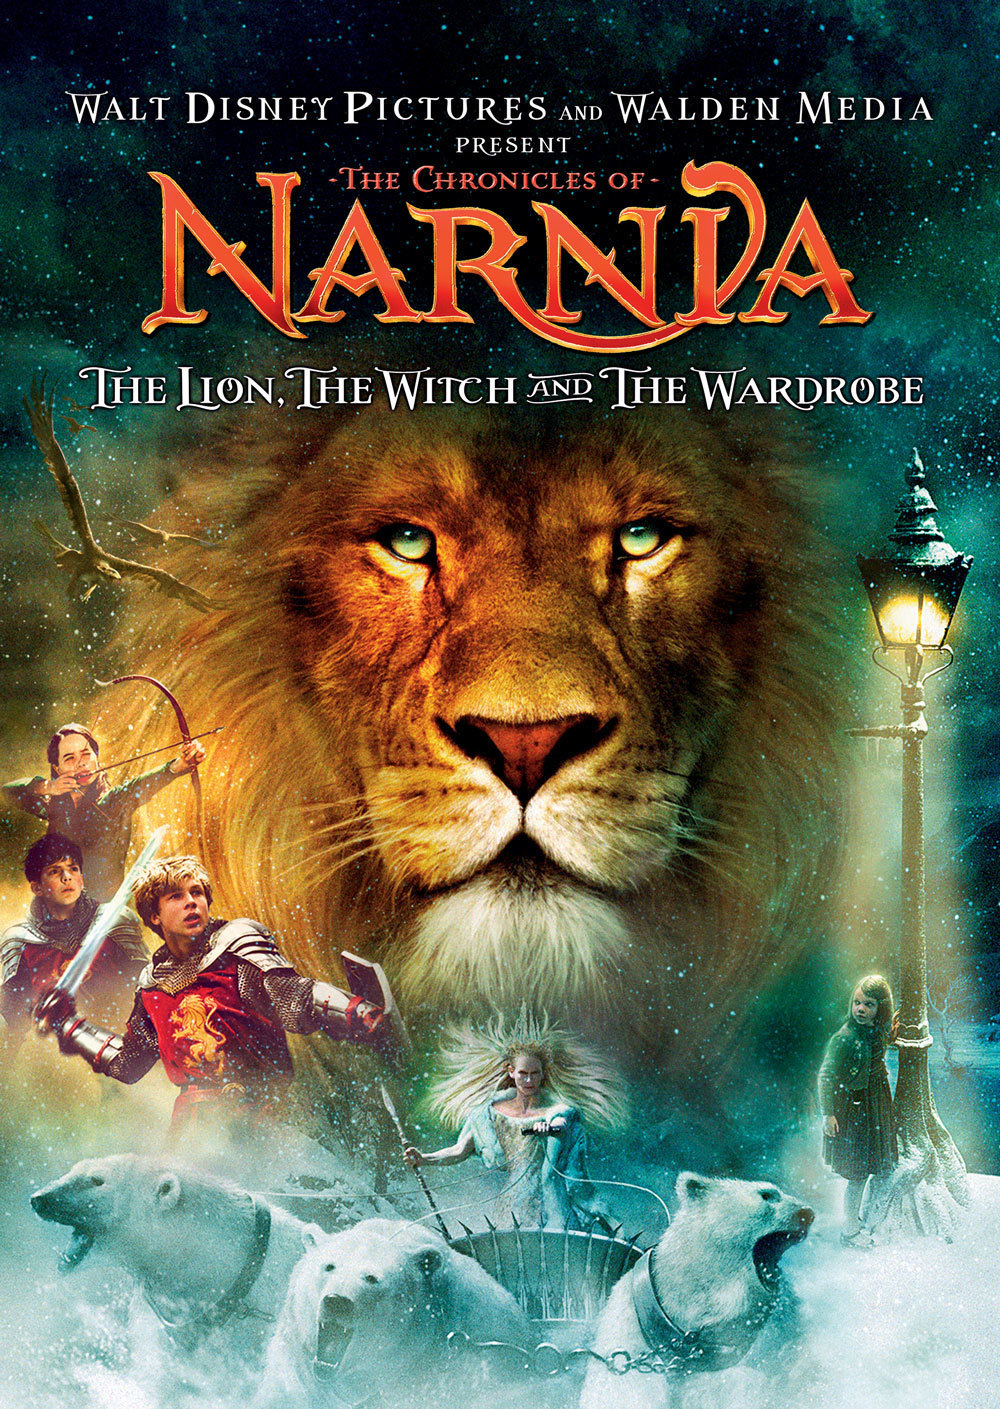 「The Chronicles of Narnia: The Lion, the Witch and the Wardrobe movie」の画像検索結果